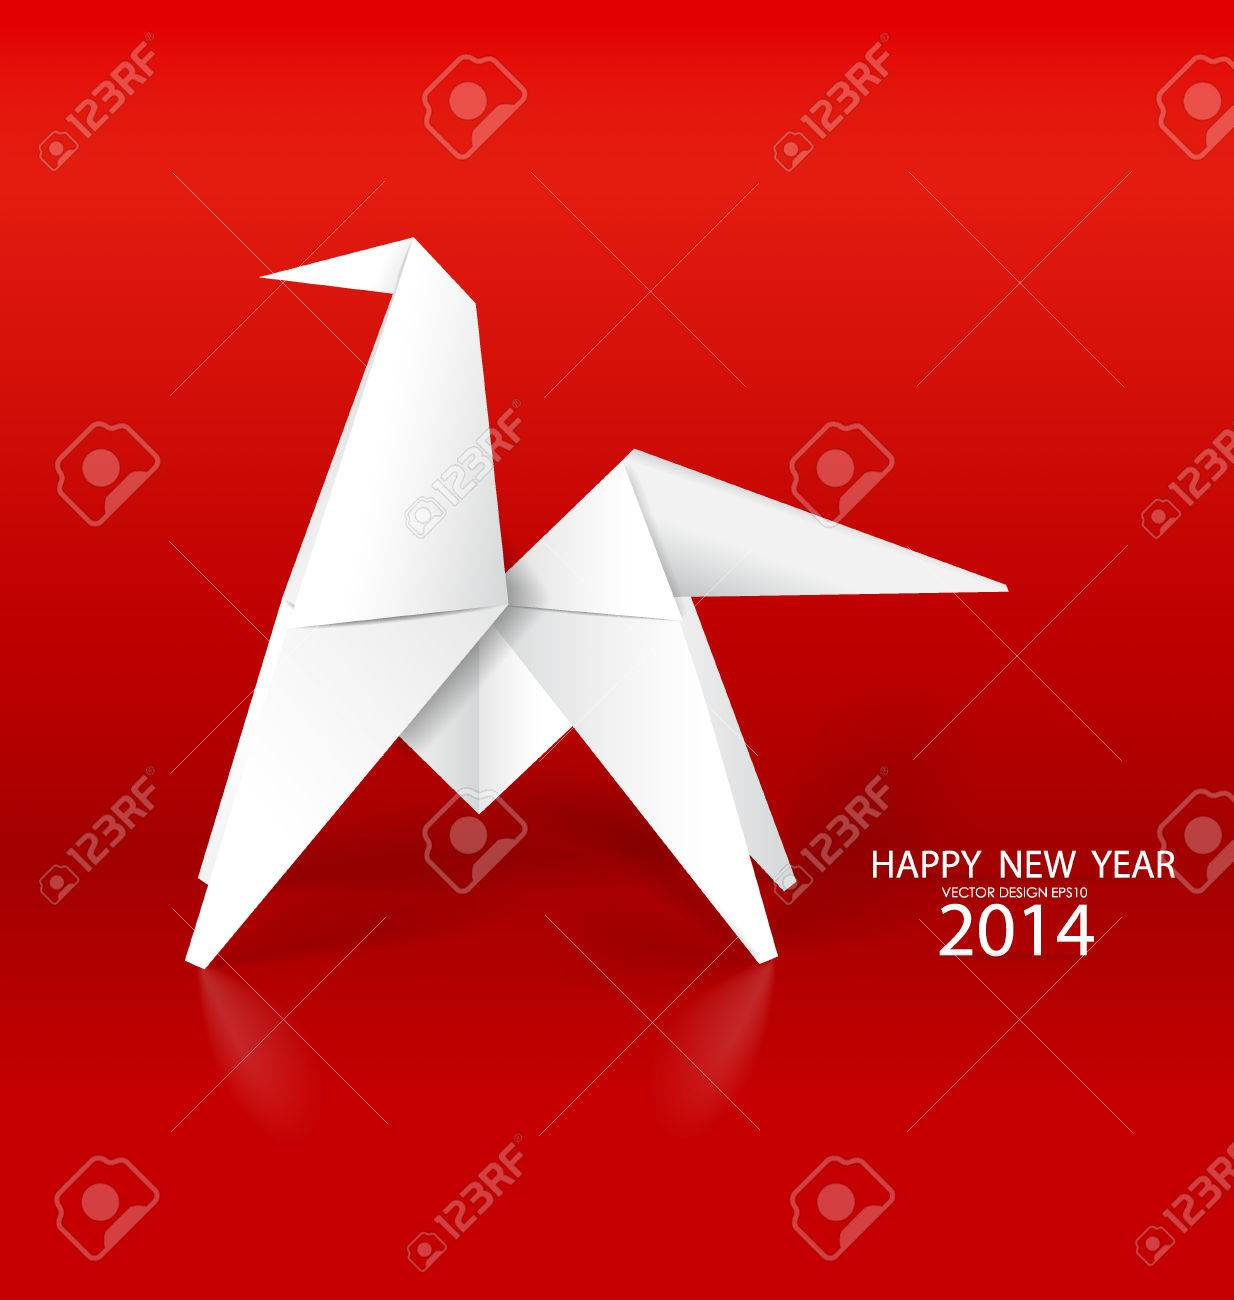 2014 happy new year greeting card origami paper horse design 2014 happy new year greeting card origami paper horse design vector illustration stock m4hsunfo